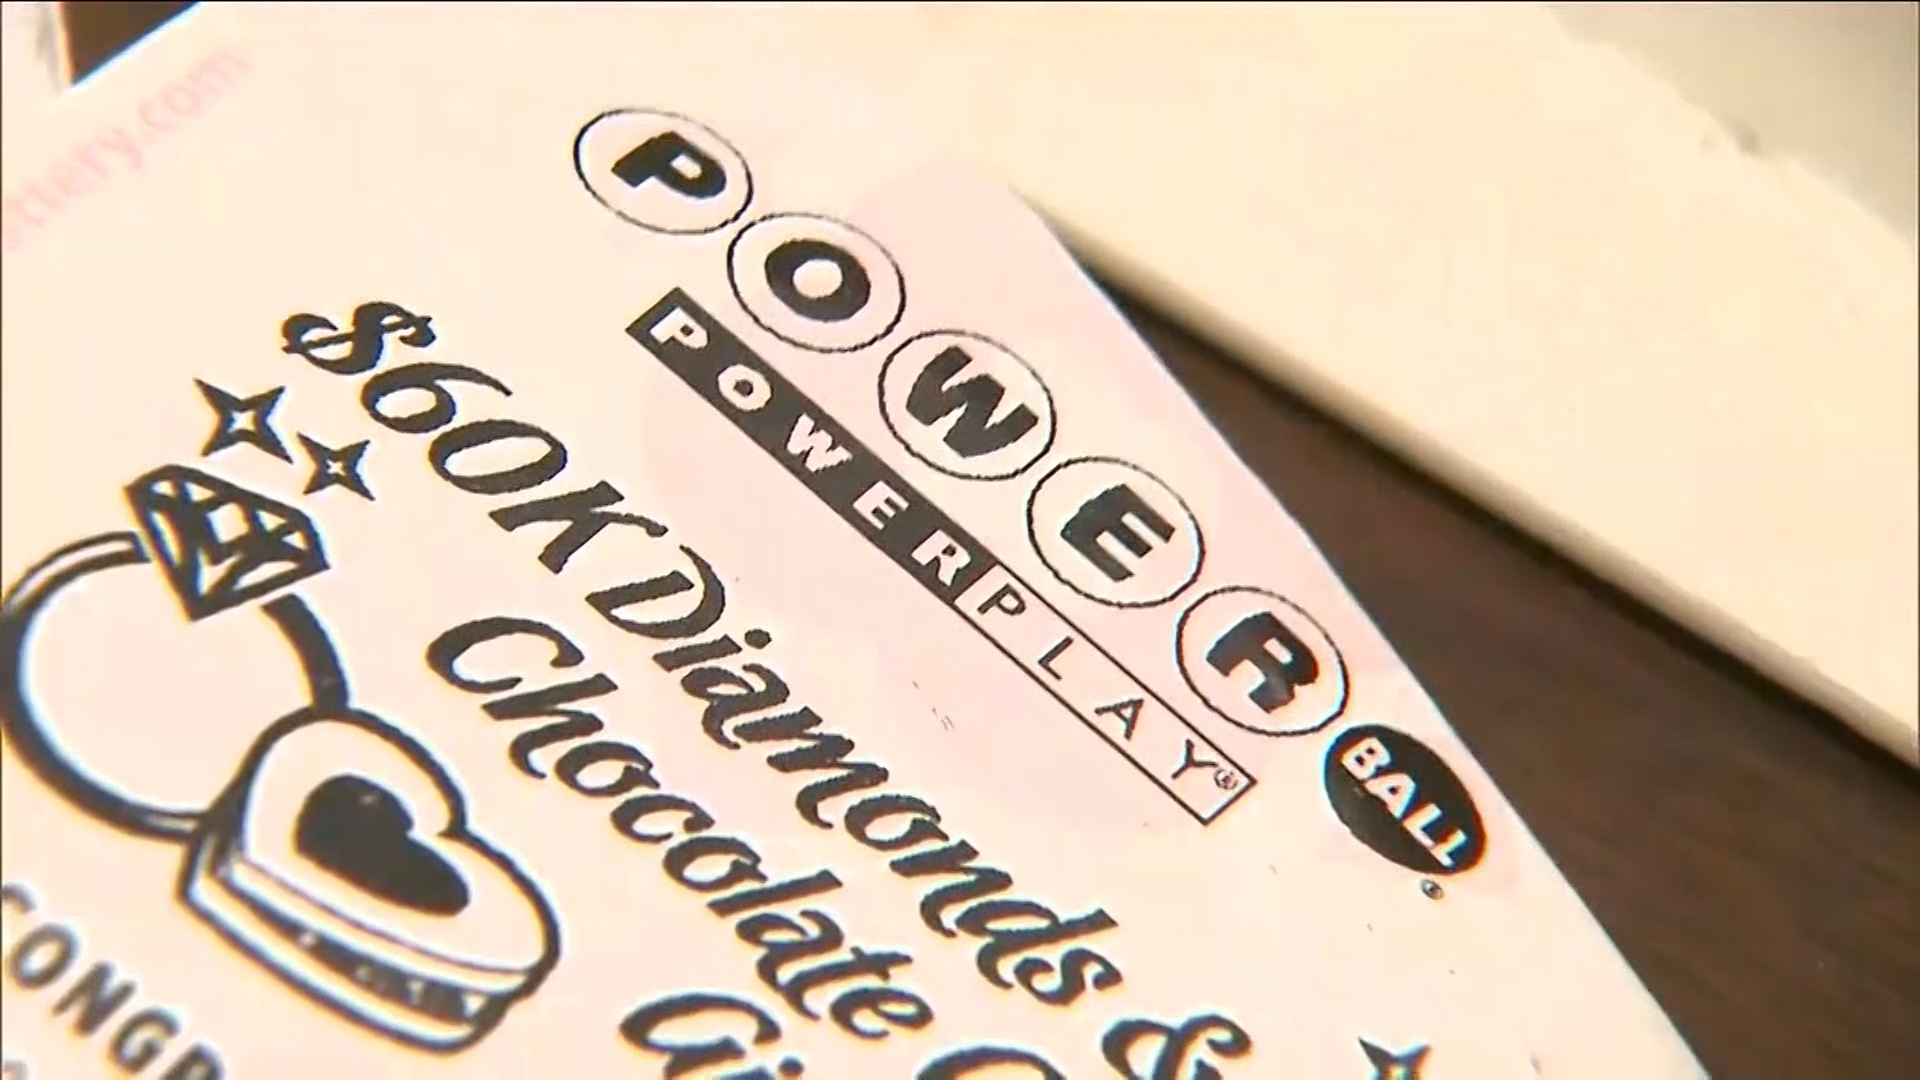 What would you do if you won the powerball jackpot?